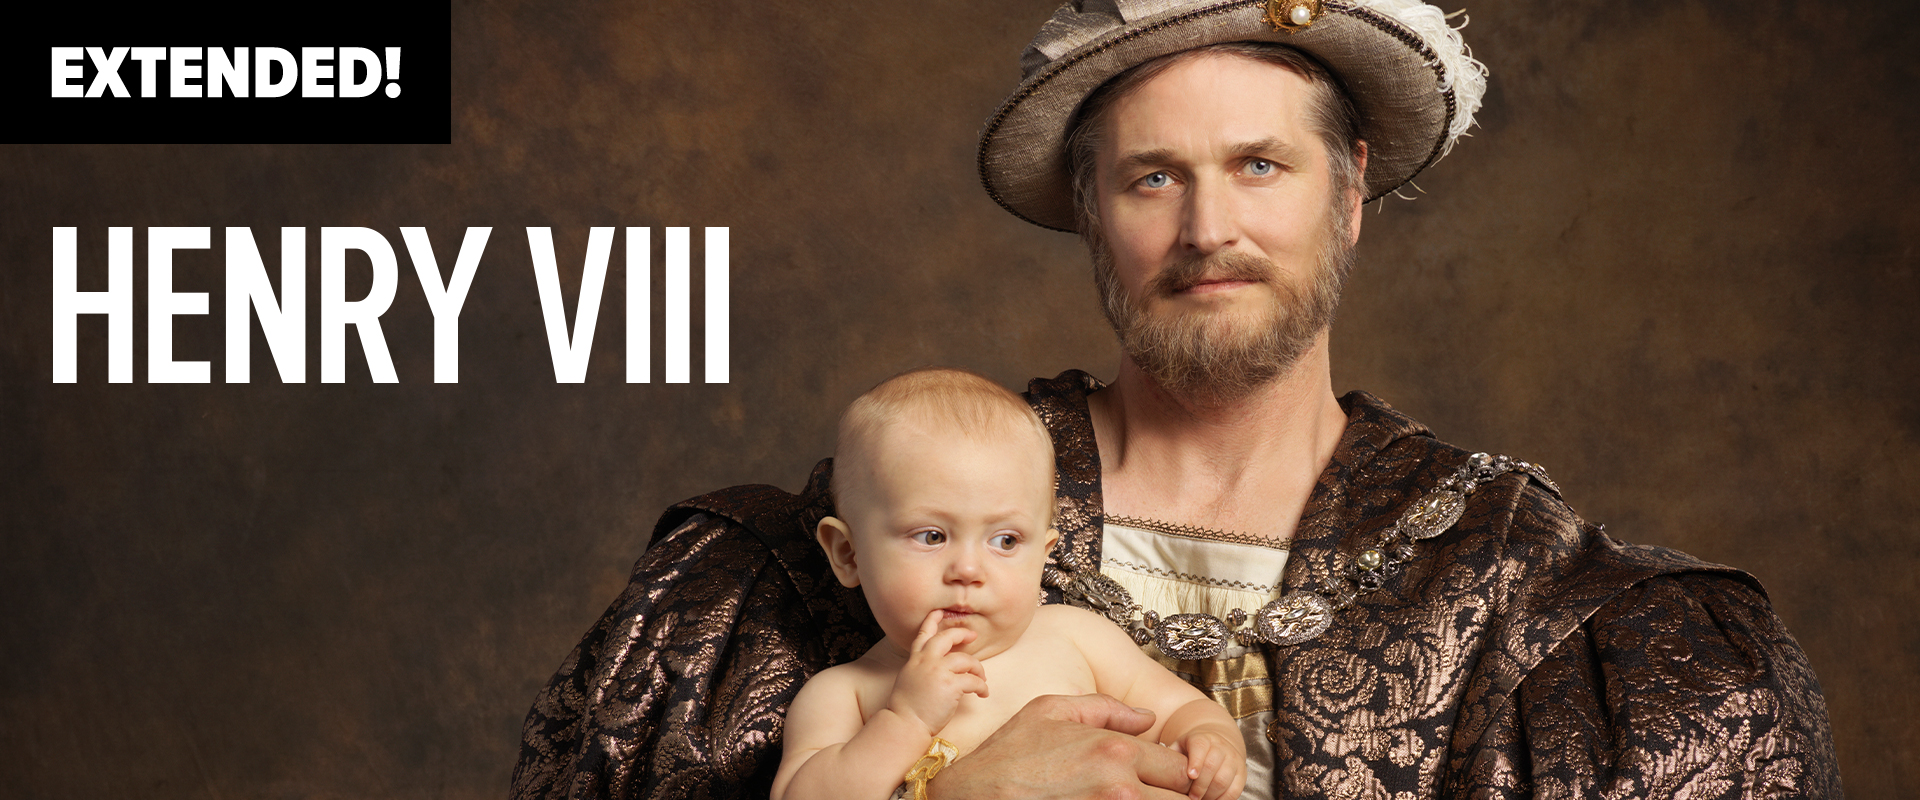 Publicity image from Henry VIII